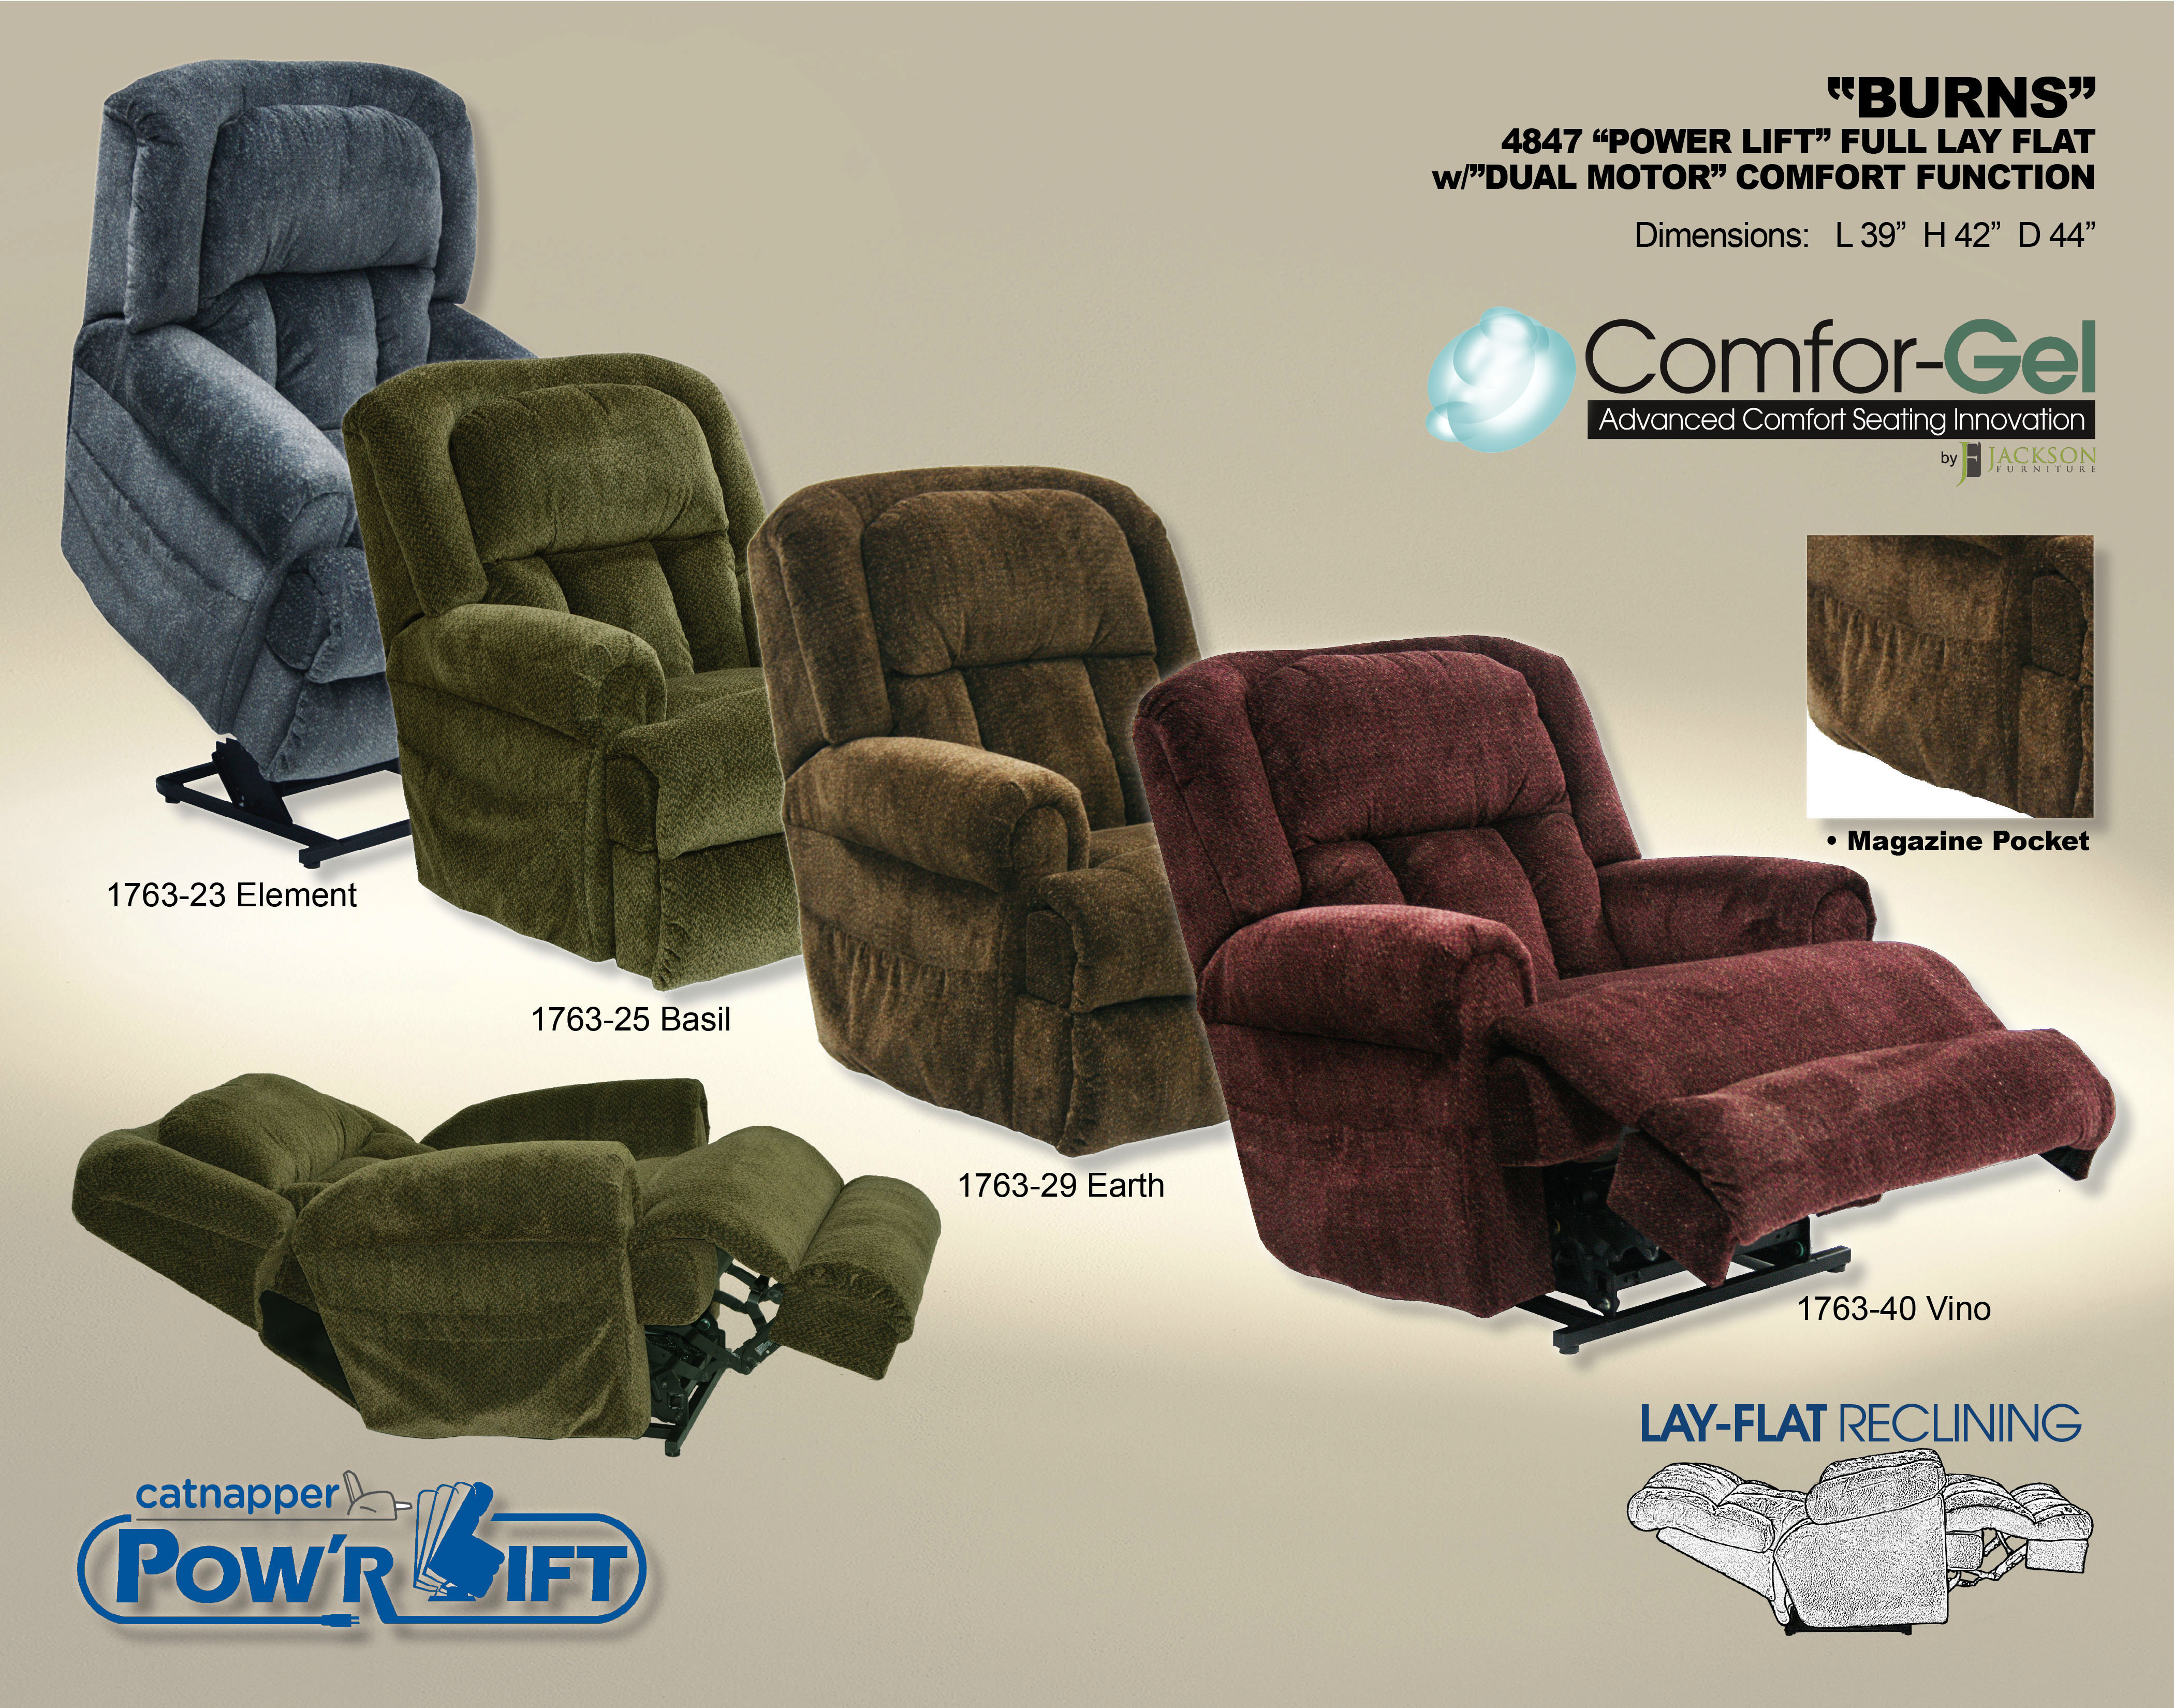 ritas residence beautiful adorable recliner dsc soother recliners poweredsofas chair full size chairs furniture power best throughout and heat with massage your catnapper elevator loveseat sofa lay reclining preston lift rental of flat reviews design